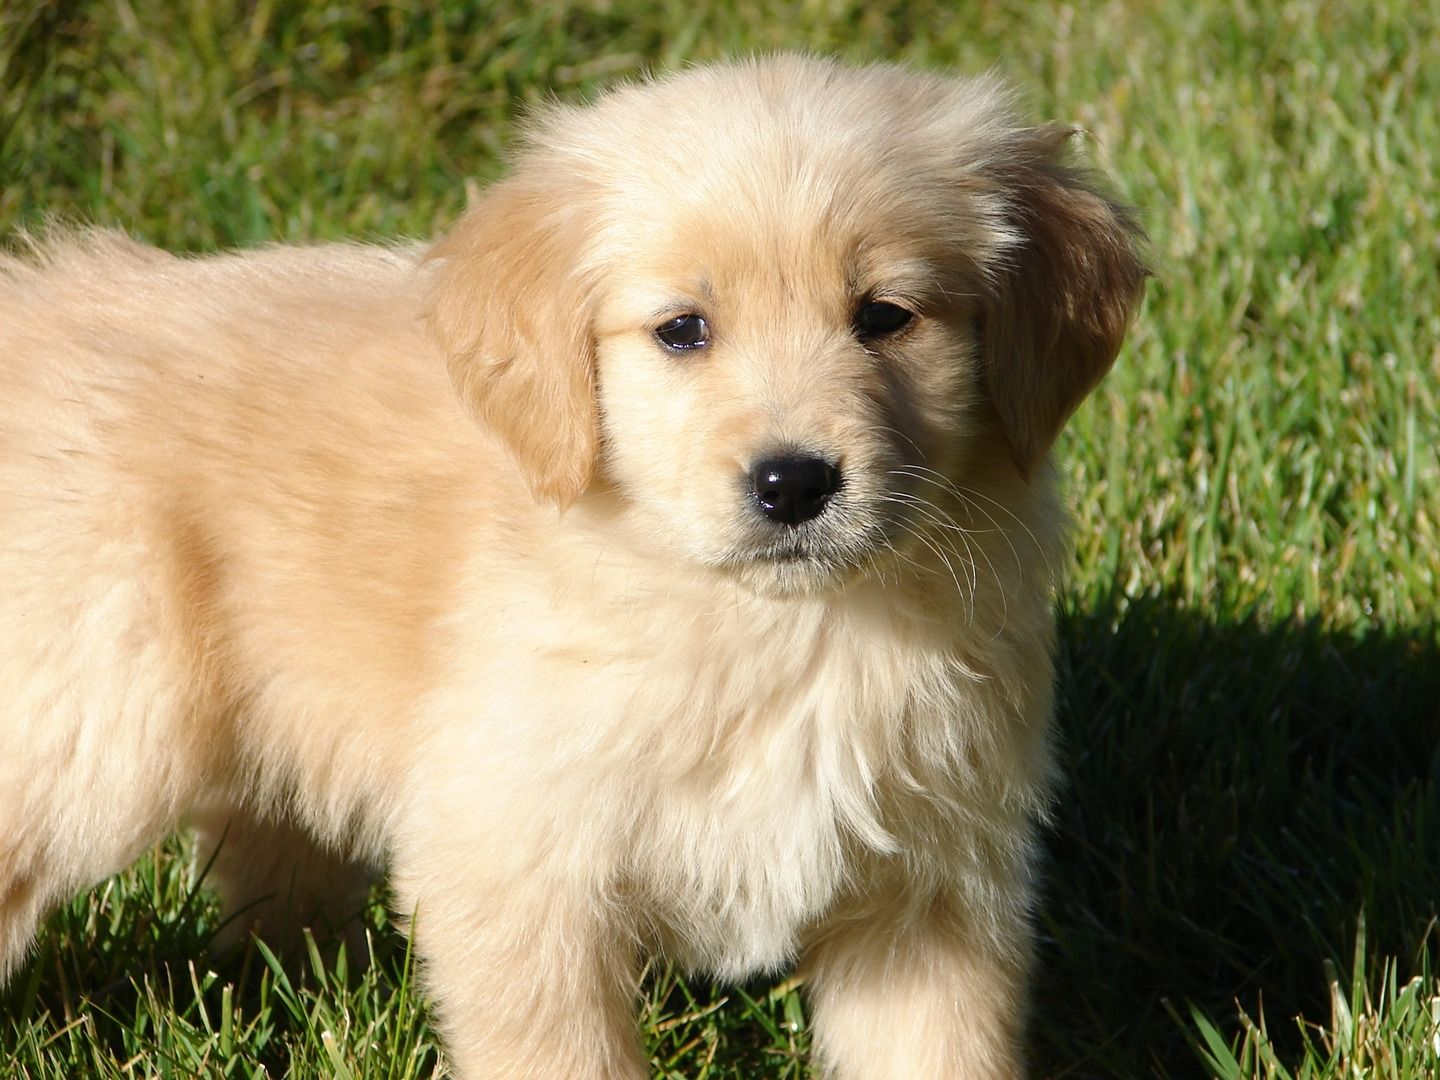 Golden Retriever Puppies For Sale Golden Retriever Dogs Cielo S Golden Retrievers San Diego Ca In 2020 Golden Retriever Retriever Dogs Golden Retriever